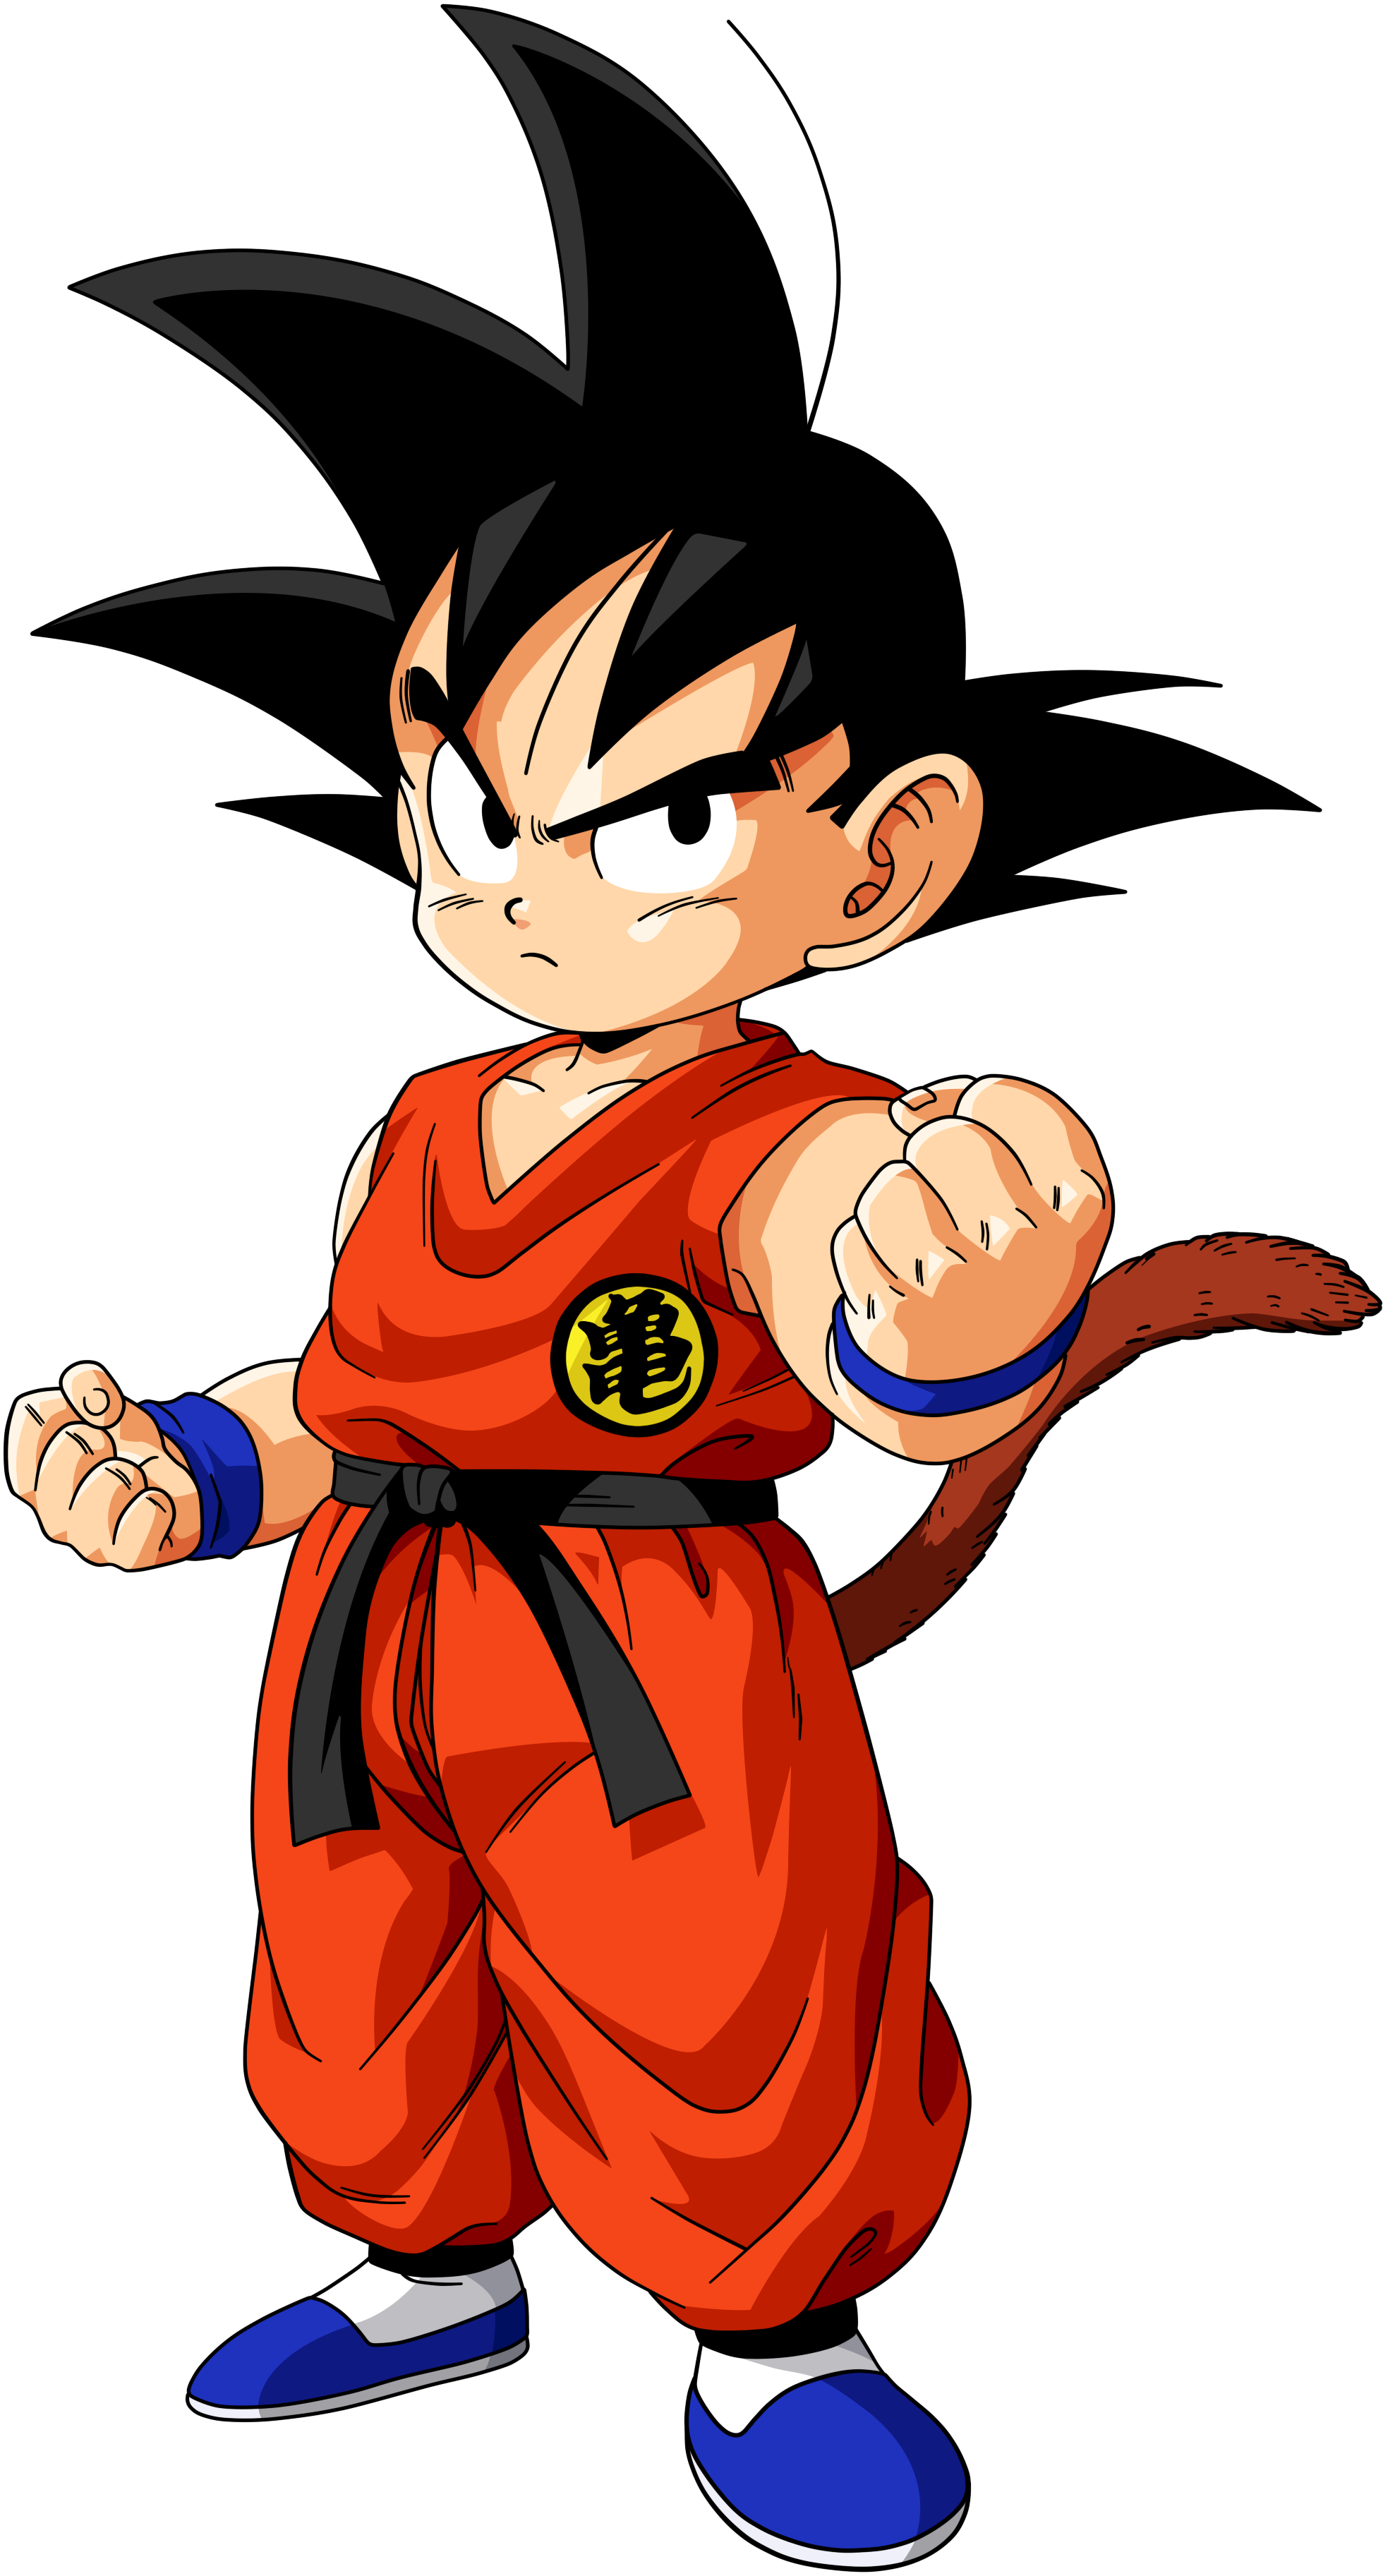 Goku dbu dragon ball fanon wiki fandom powered by wikia - Dragon ball z 21 ...